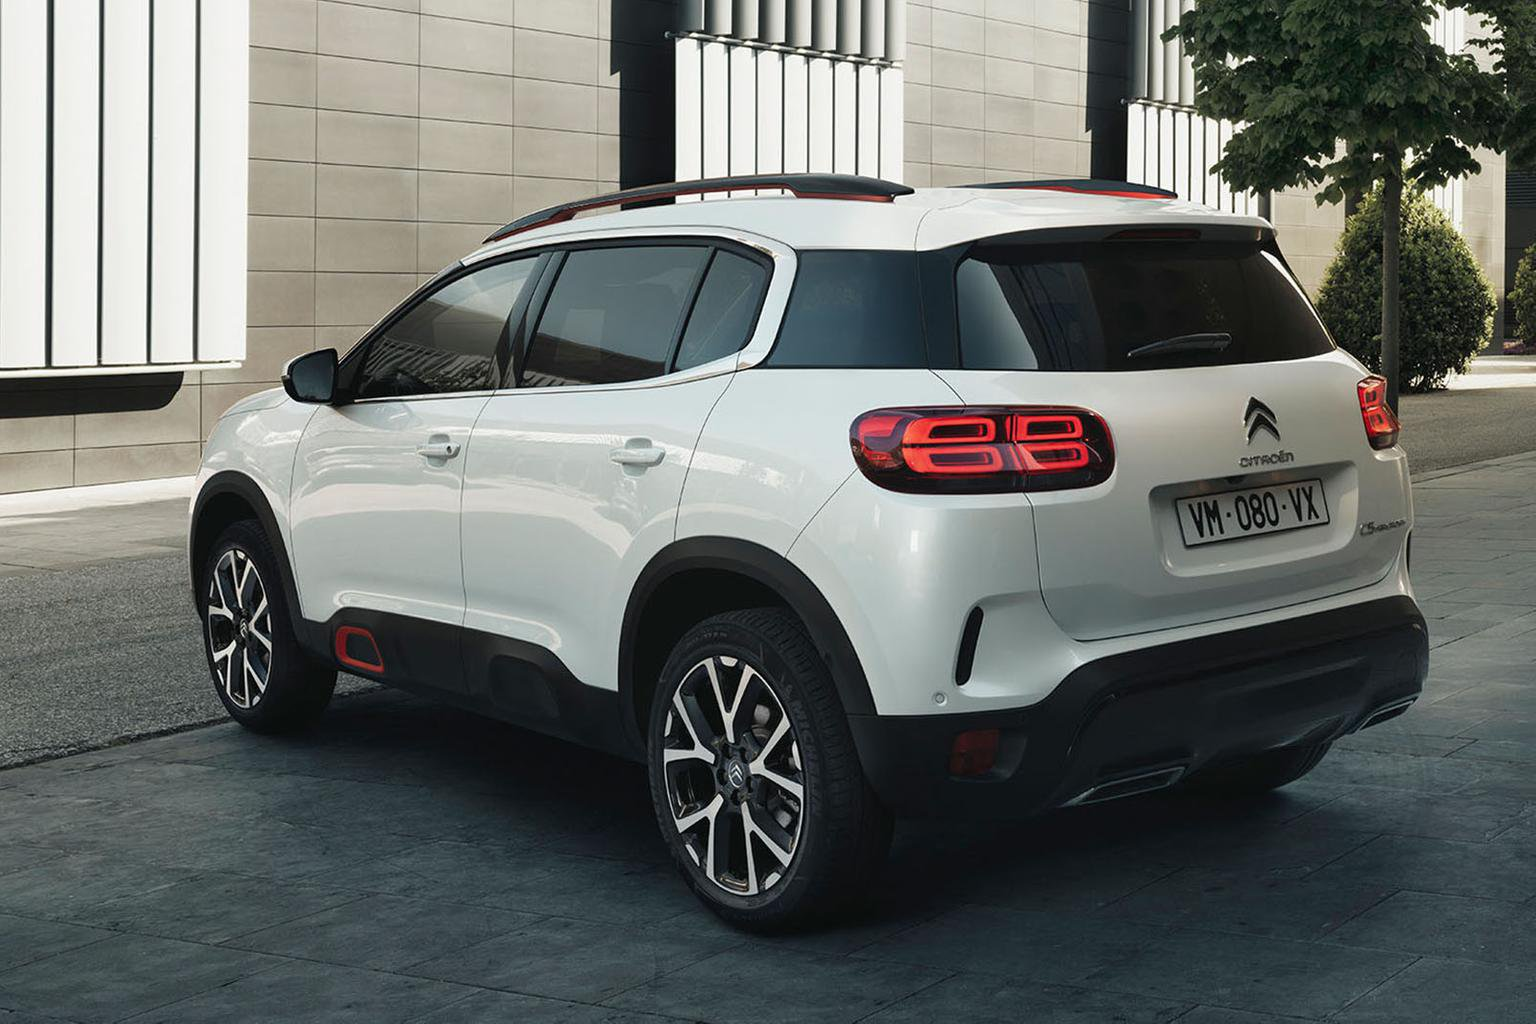 2018 Citroën C5 Aircross – price, specs and release date